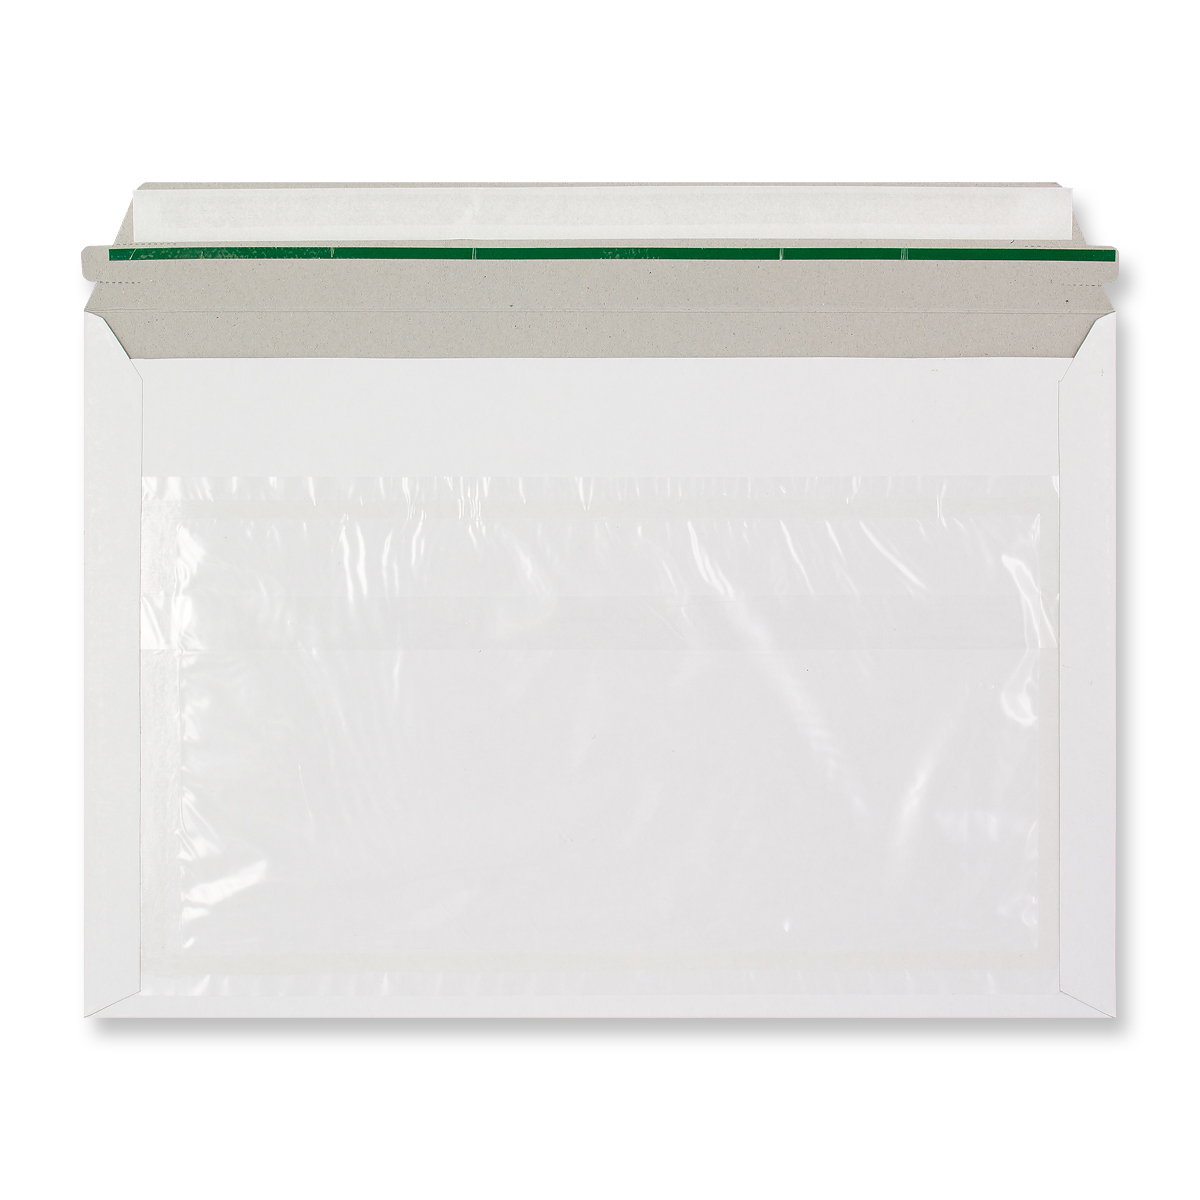 249 x 359mm COURIER ALL BOARD ENVELOPES WITH DOCUMENT WALLET